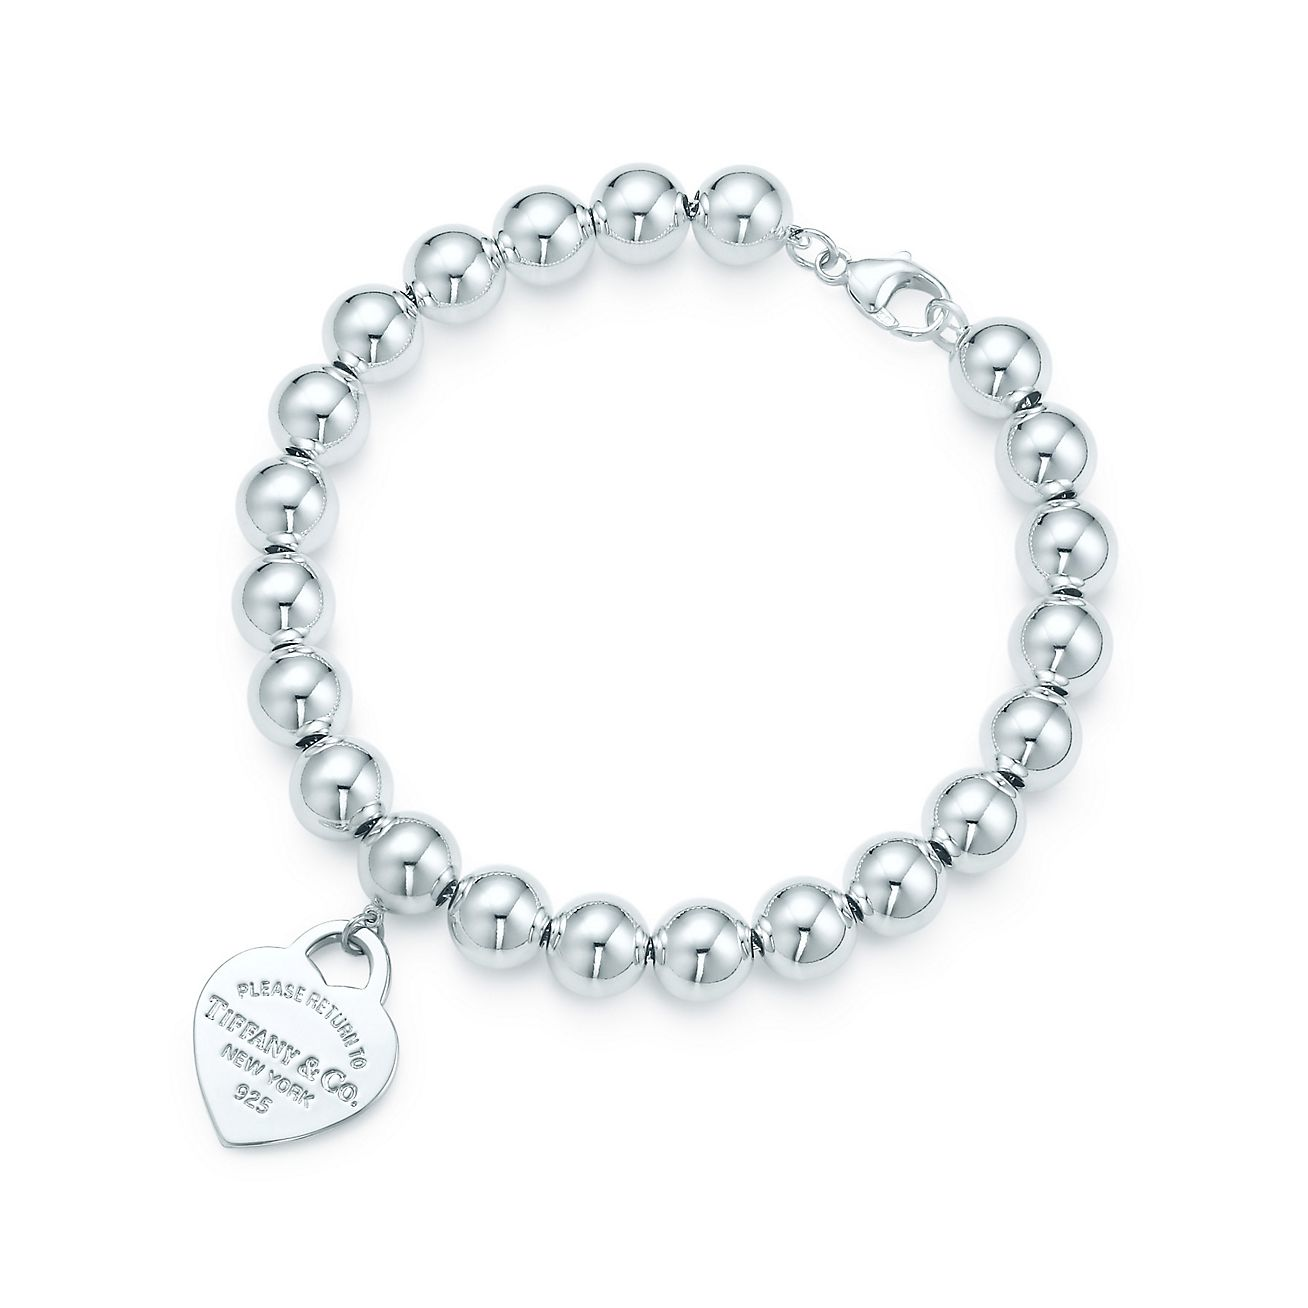 Return to Tiffany small heart tag in silver on a freshwater pearl bracelet Tiffany & Co.